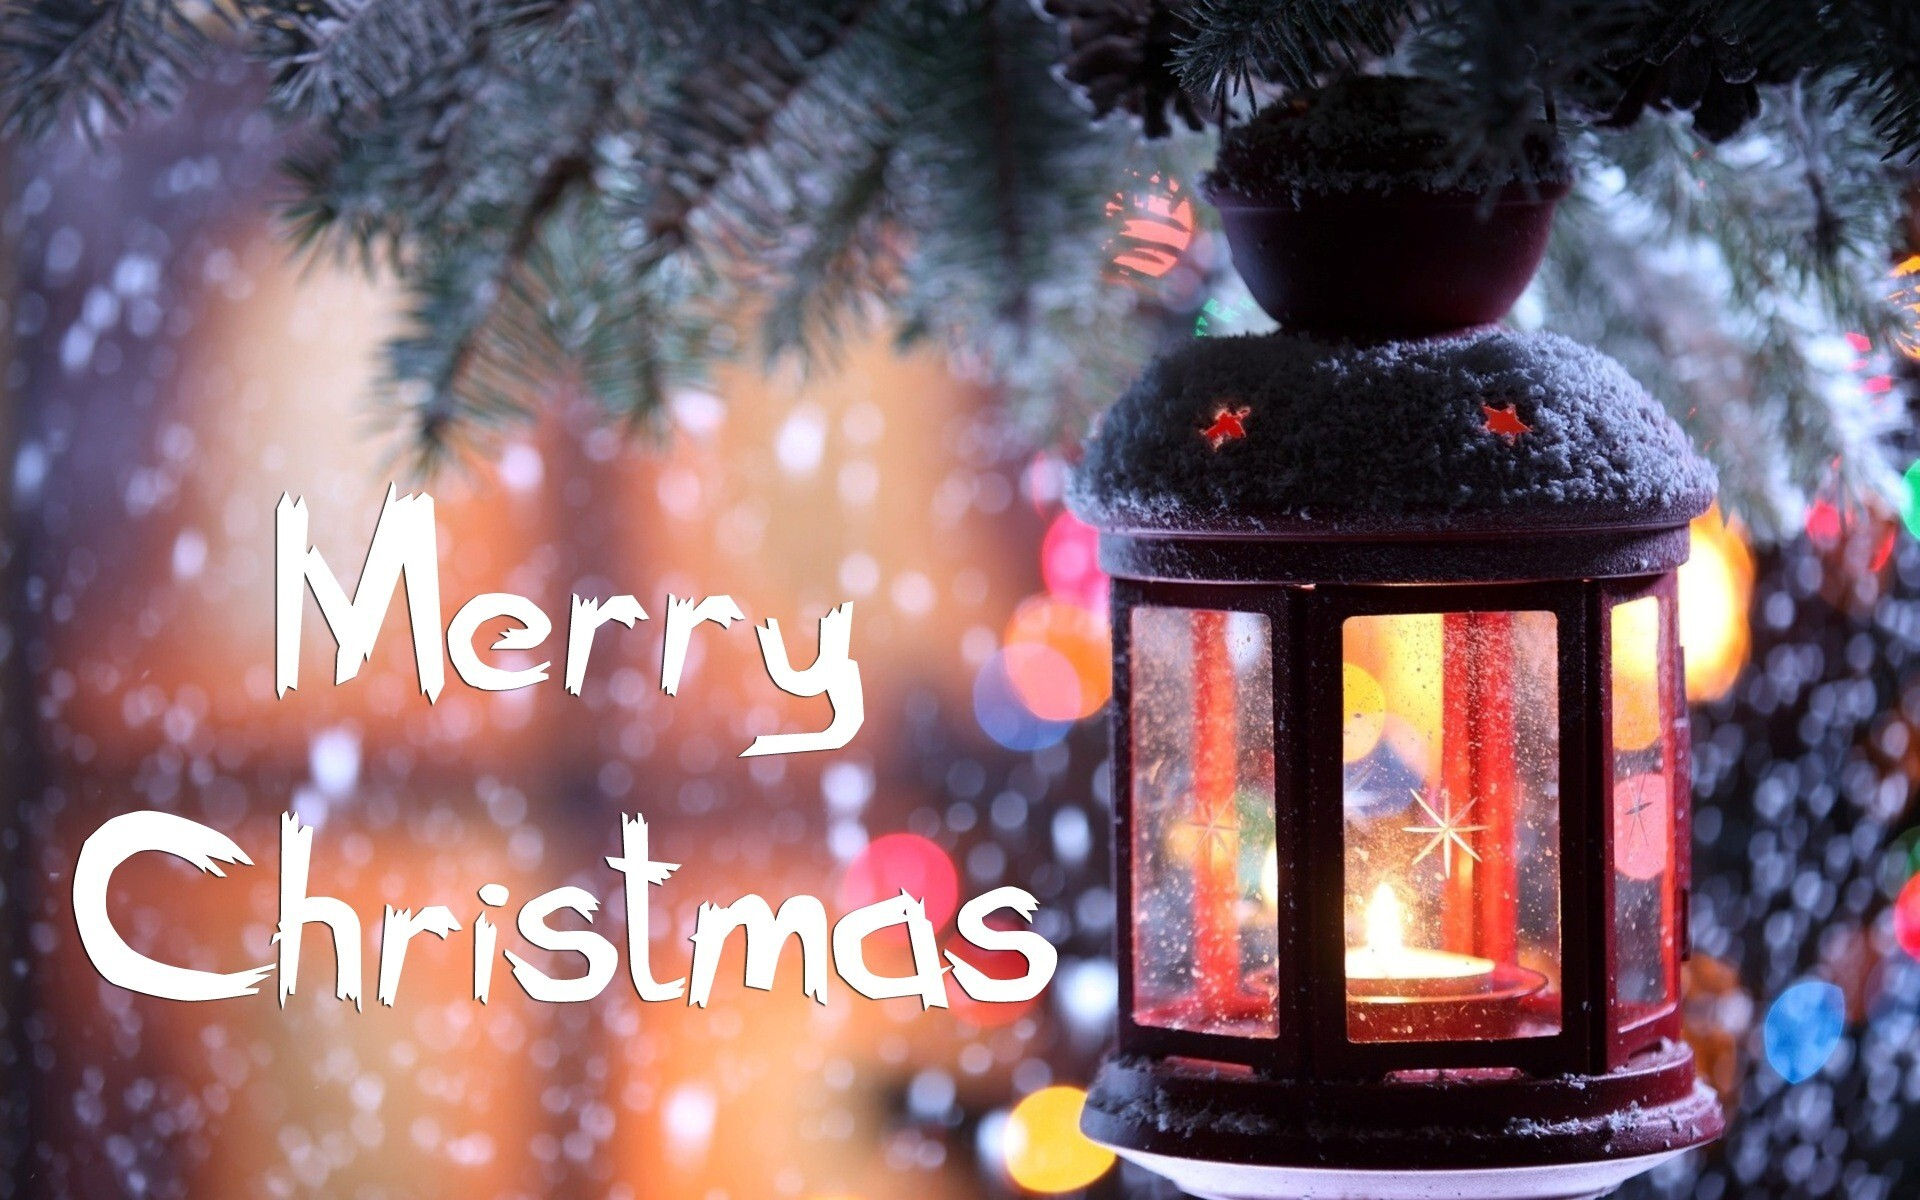 Merry Christmas Images Hd.Merry Christmas Hd Photo Hd Wallpapers